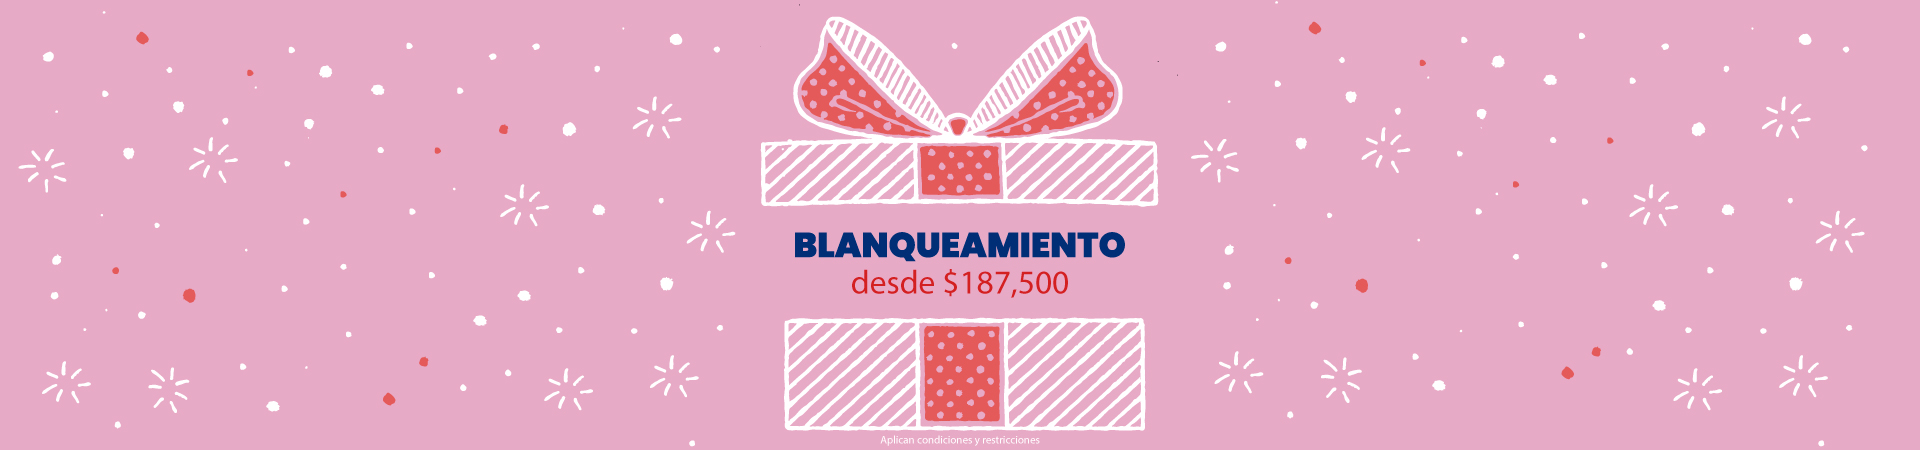 blanqueamiento_04042019